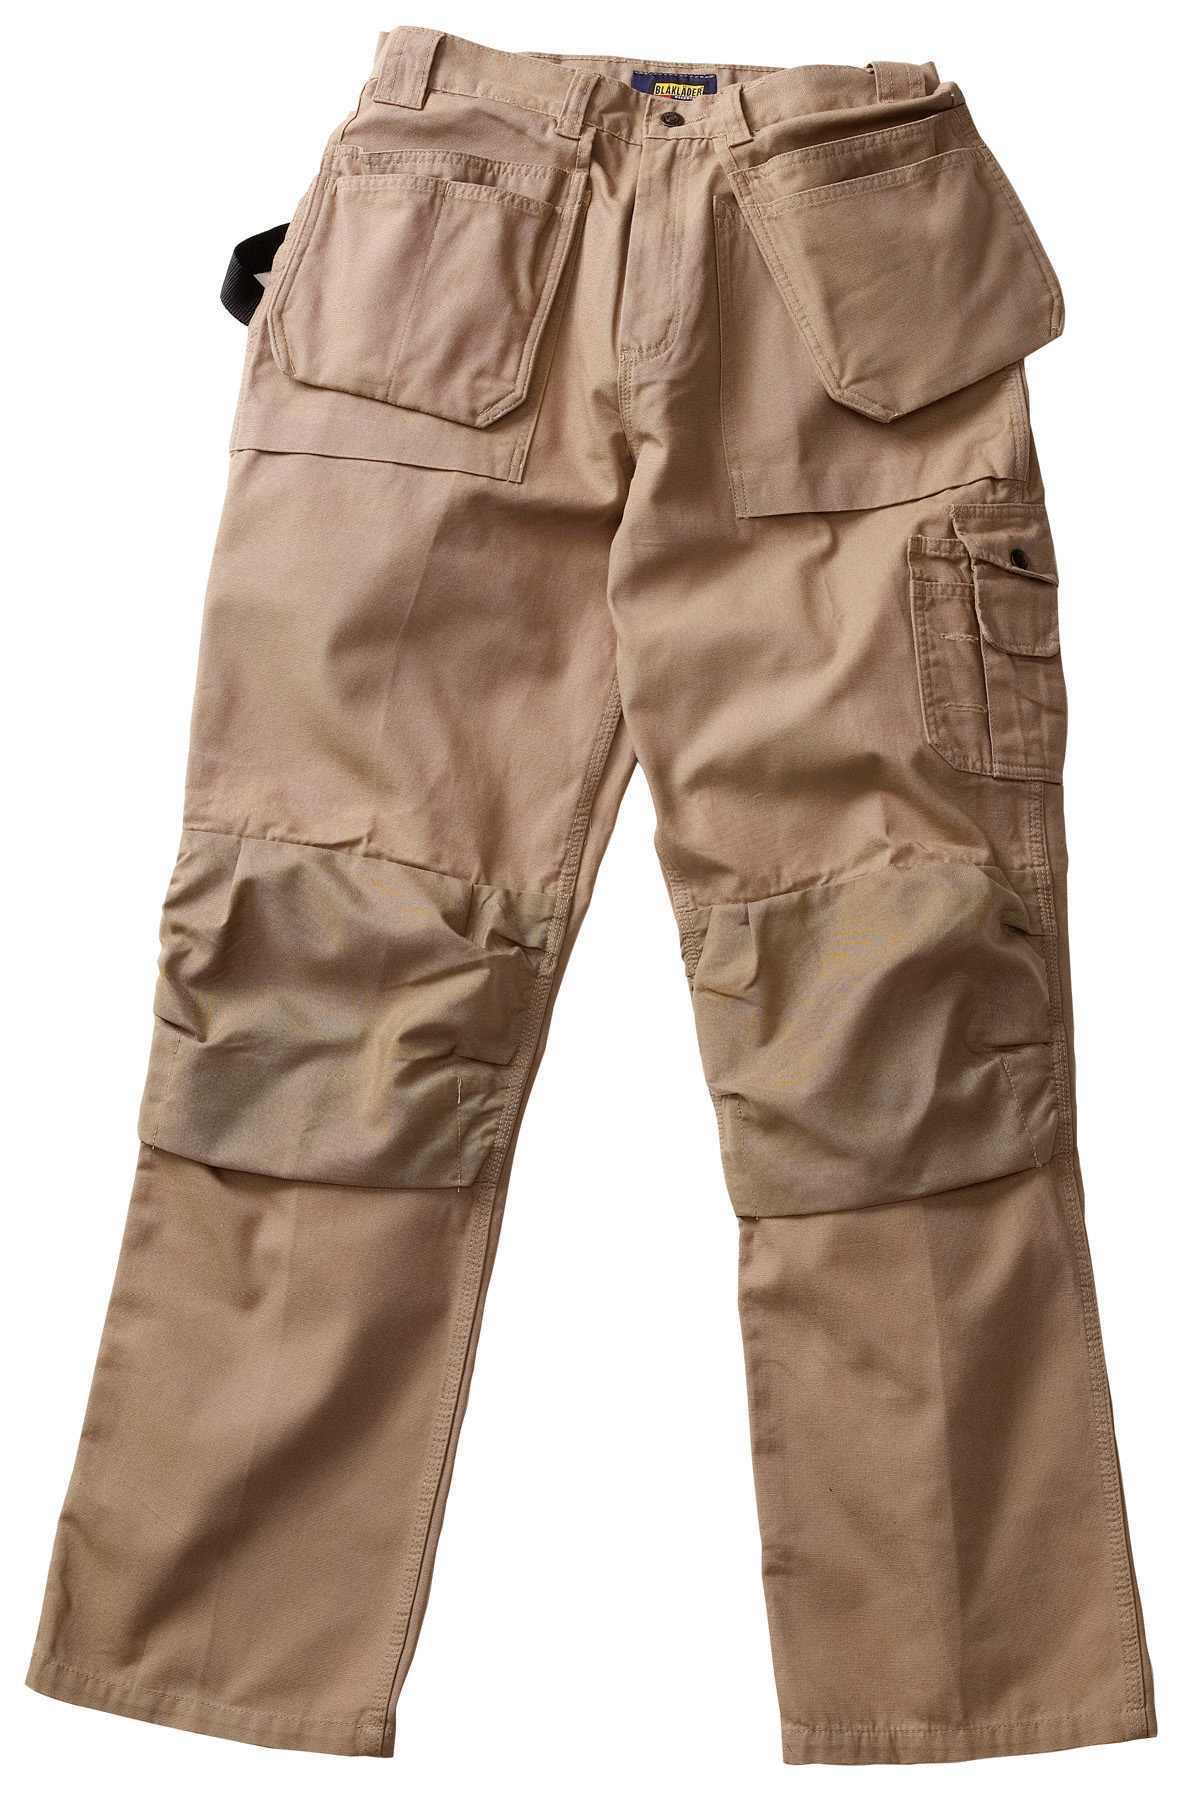 Bantam pant: Blaklader's Bantam Pant is made from 8 oz. cotton canvas, making it a lighter option for spring and summer. The Bantam pant is perfect for plumbers and HVAC-R professionals working in warmer climates.